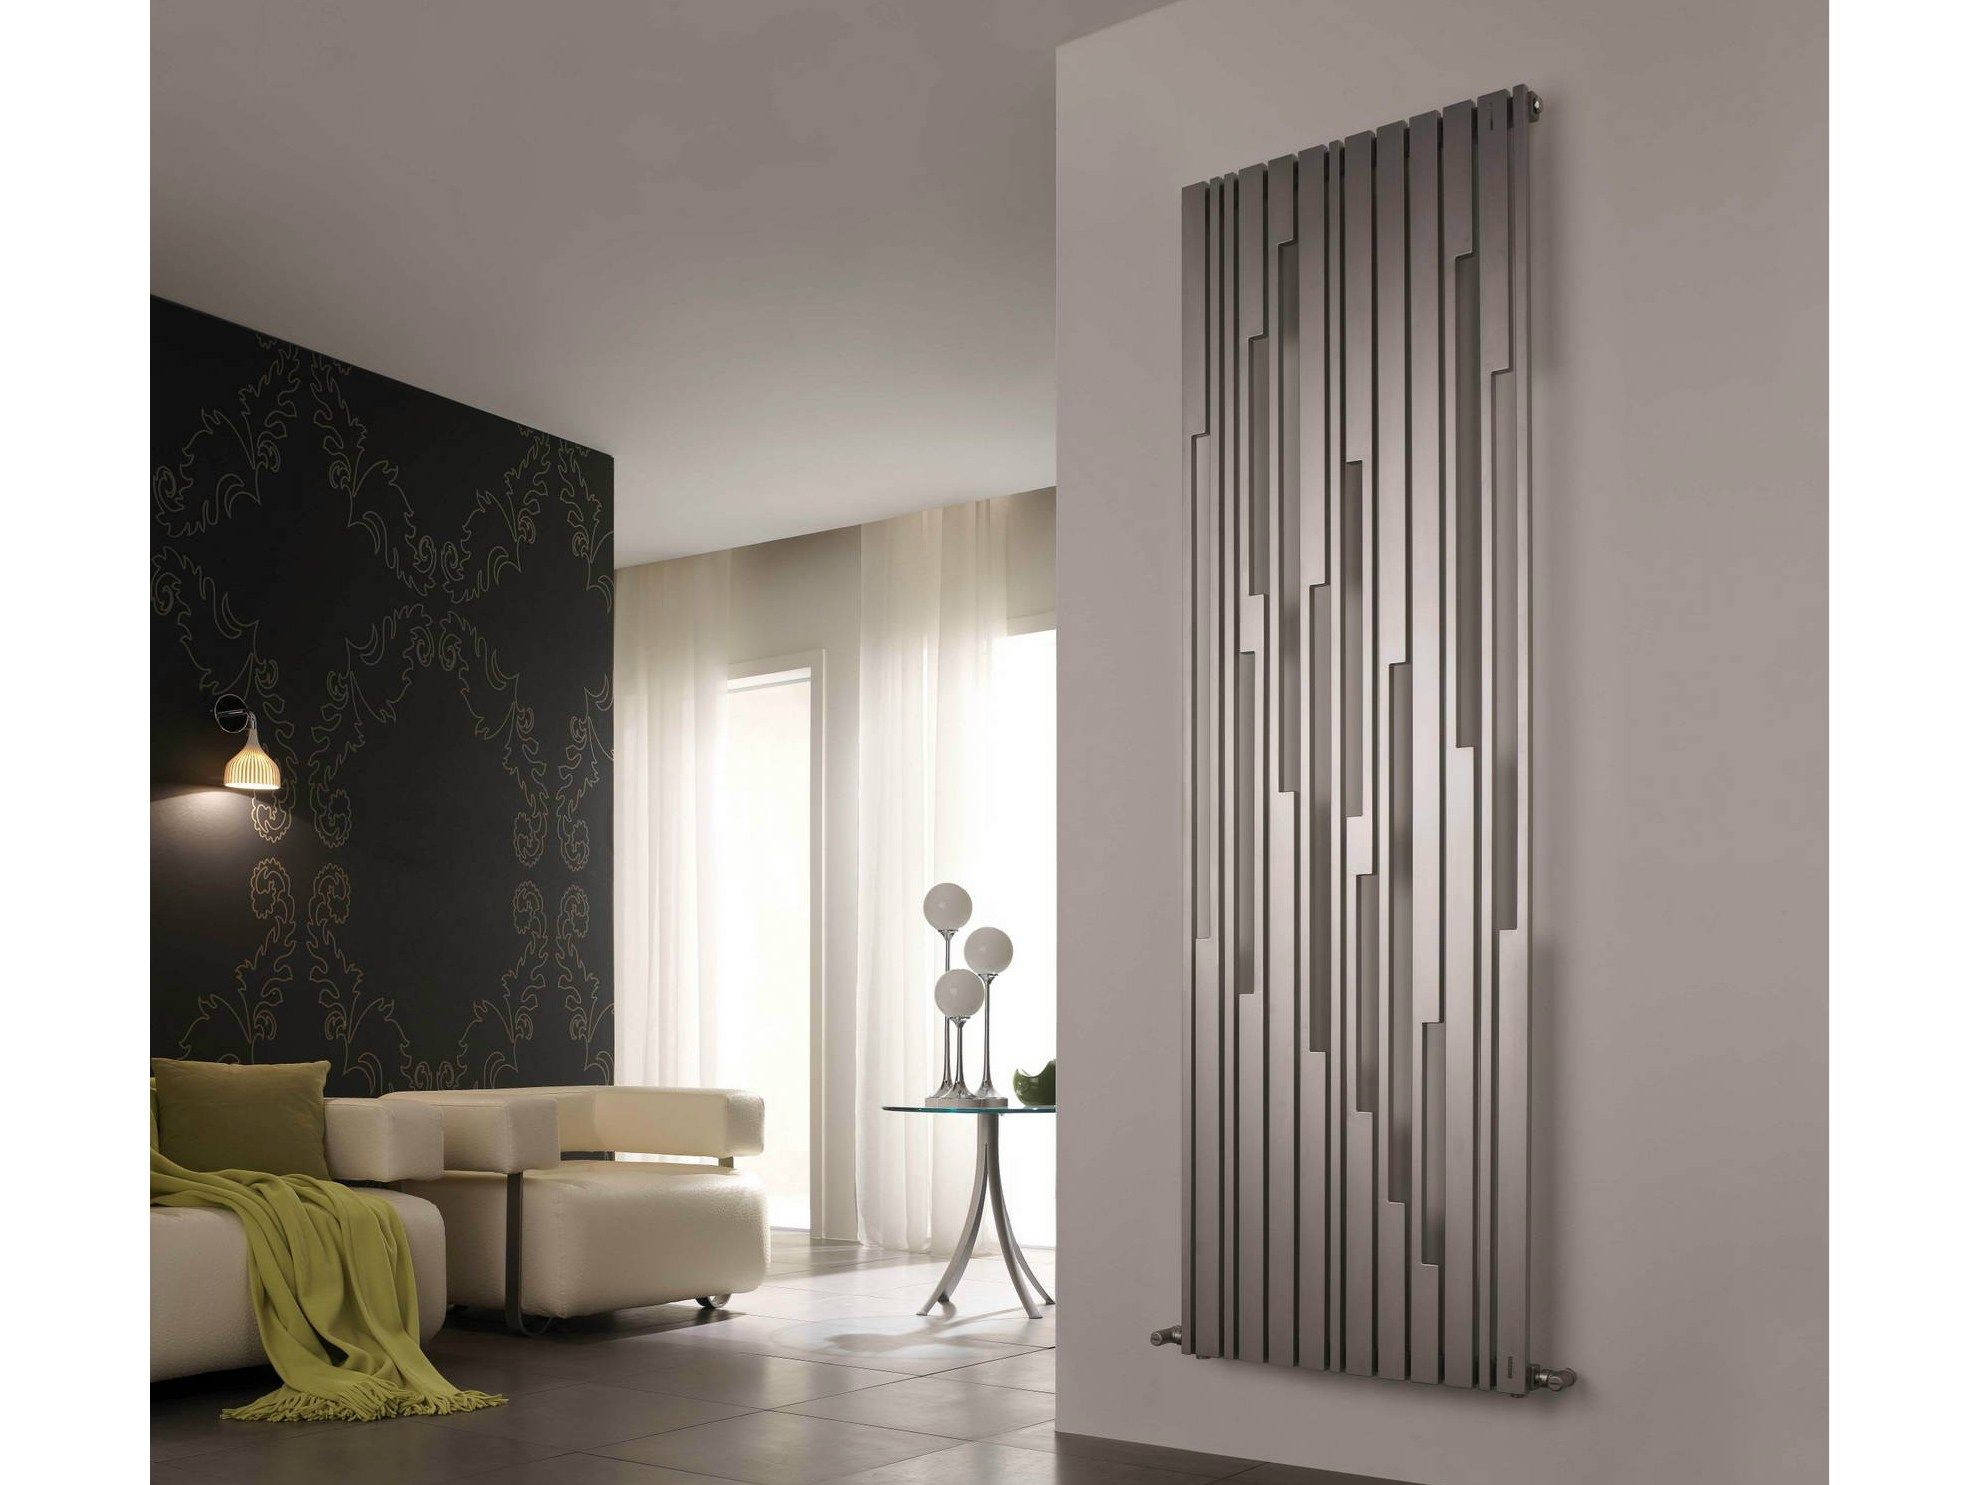 Heizkörper Schlafzimmer ~ Decorative radiator google search heaters pinterest